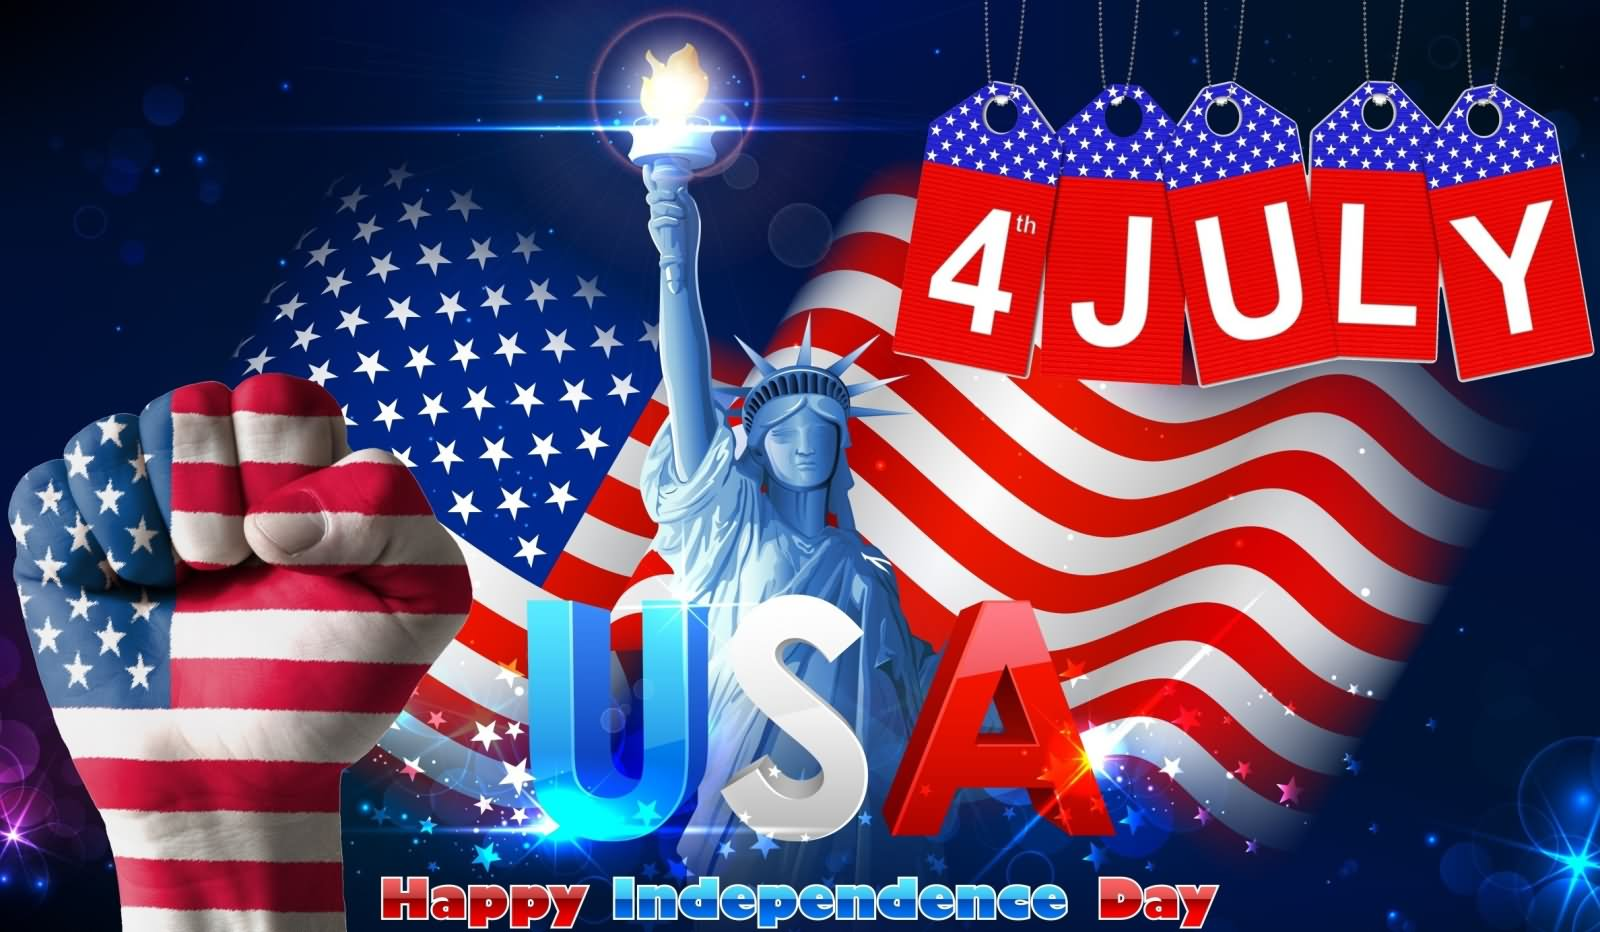 unites states 4th July independence day greeting for facebook cover wallpaper